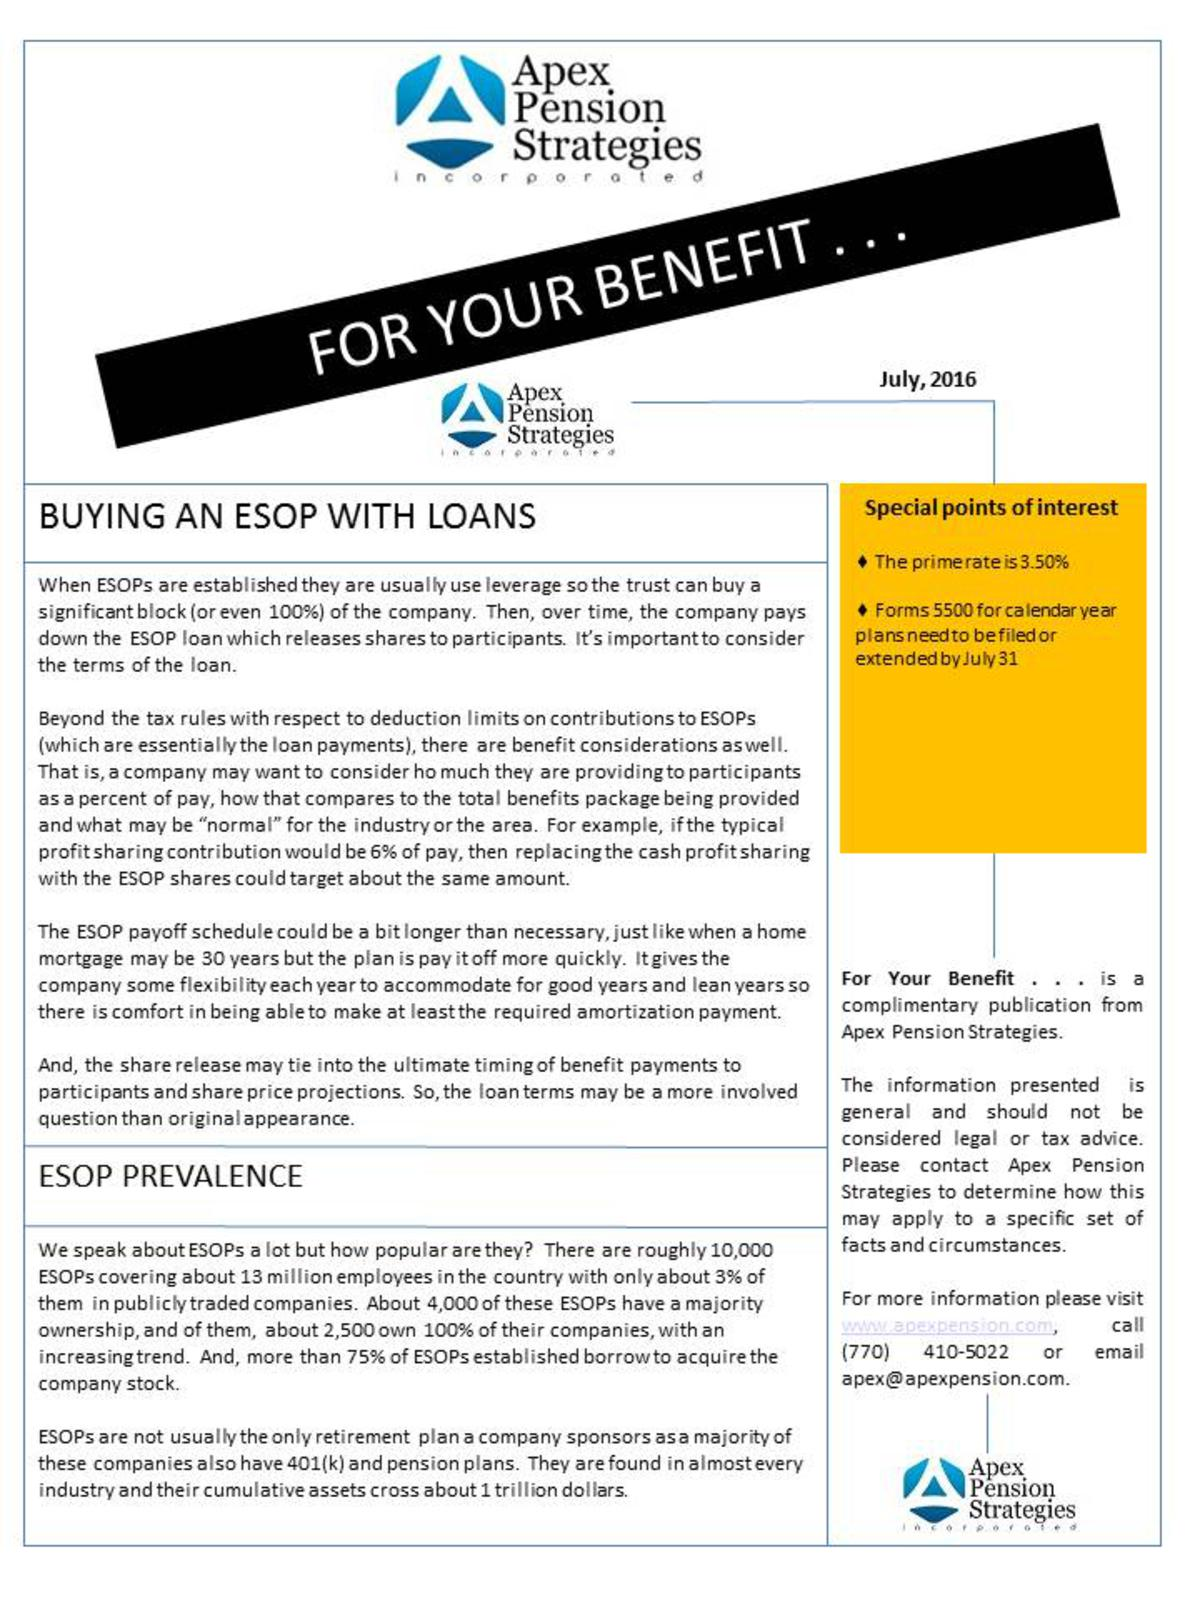 Buying an ESOP with Loans